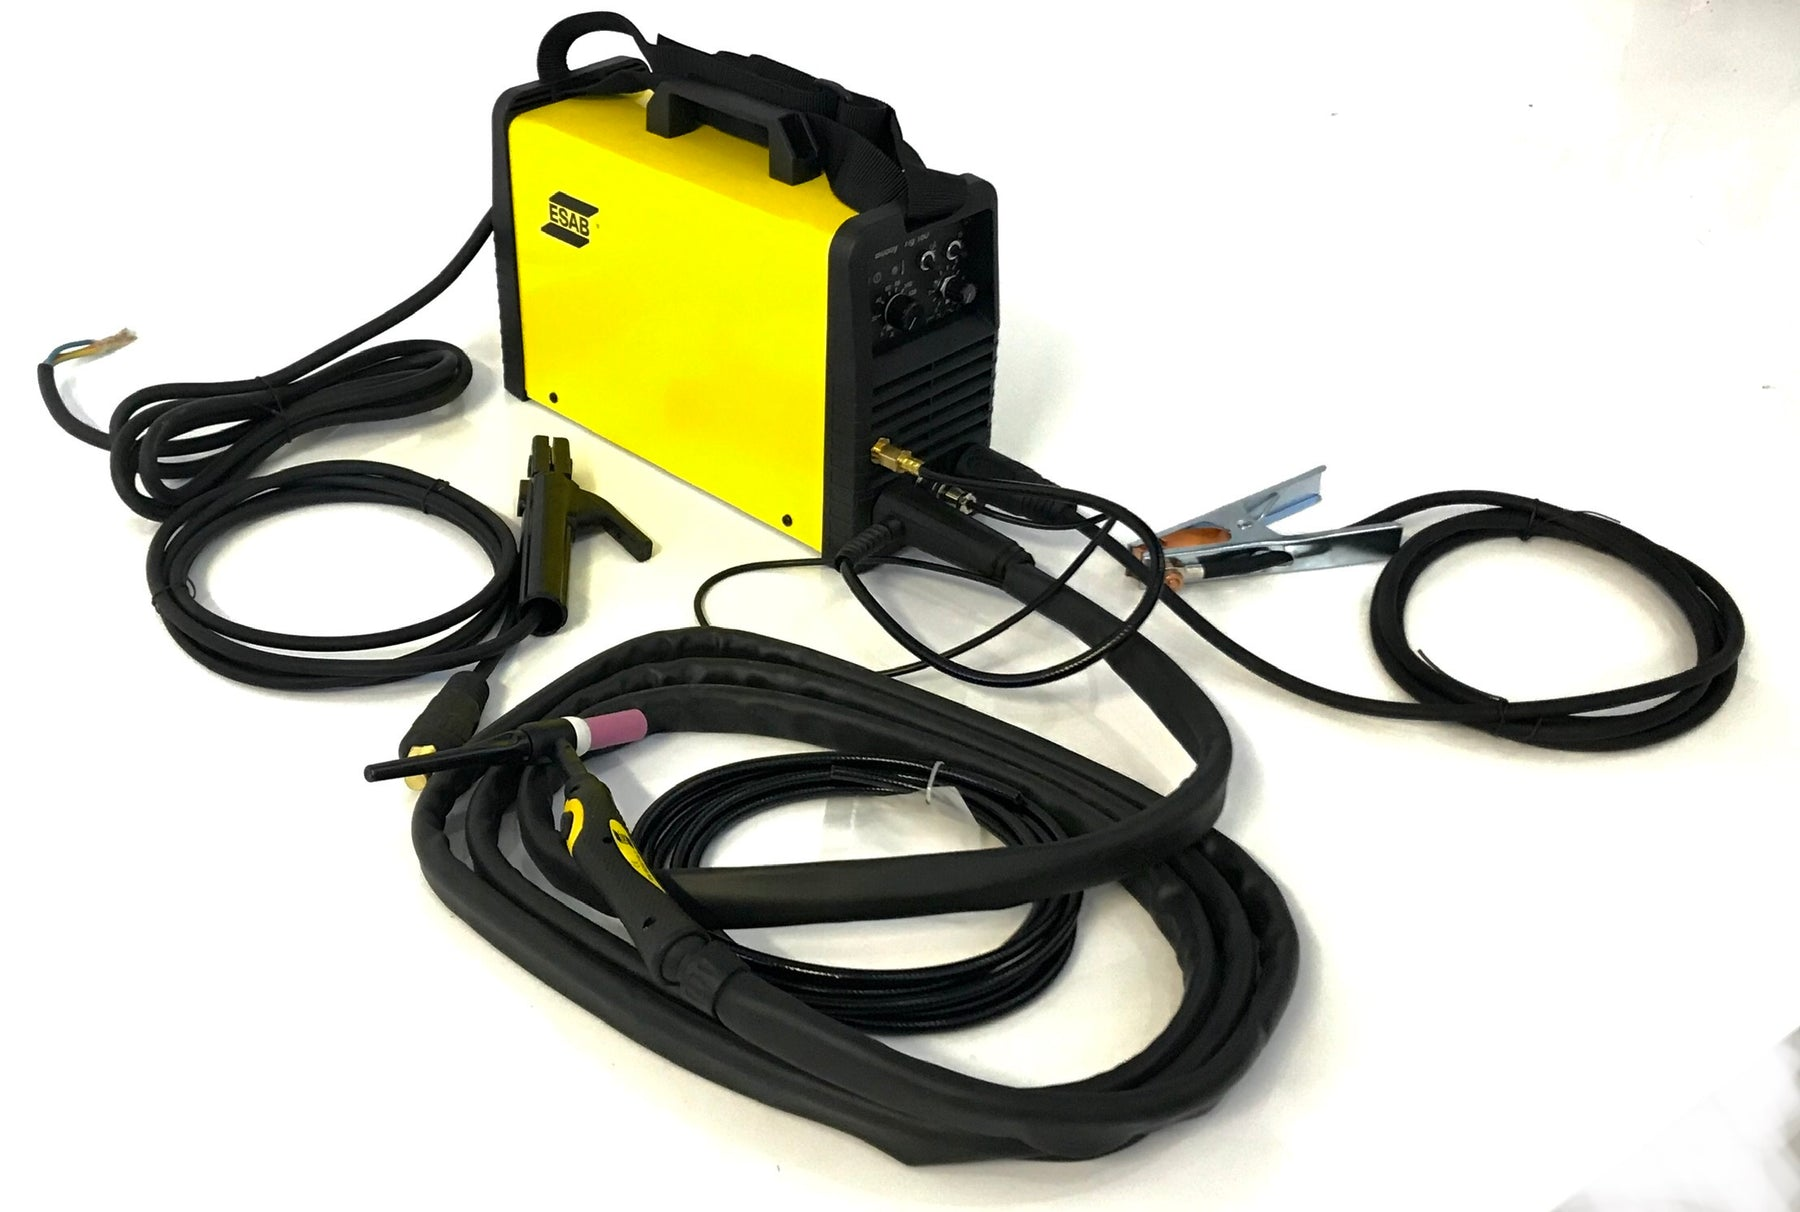 ESAB - Buddy™ 160 Tig Welding Machine  - 160 Amp Tig Inverter Welder